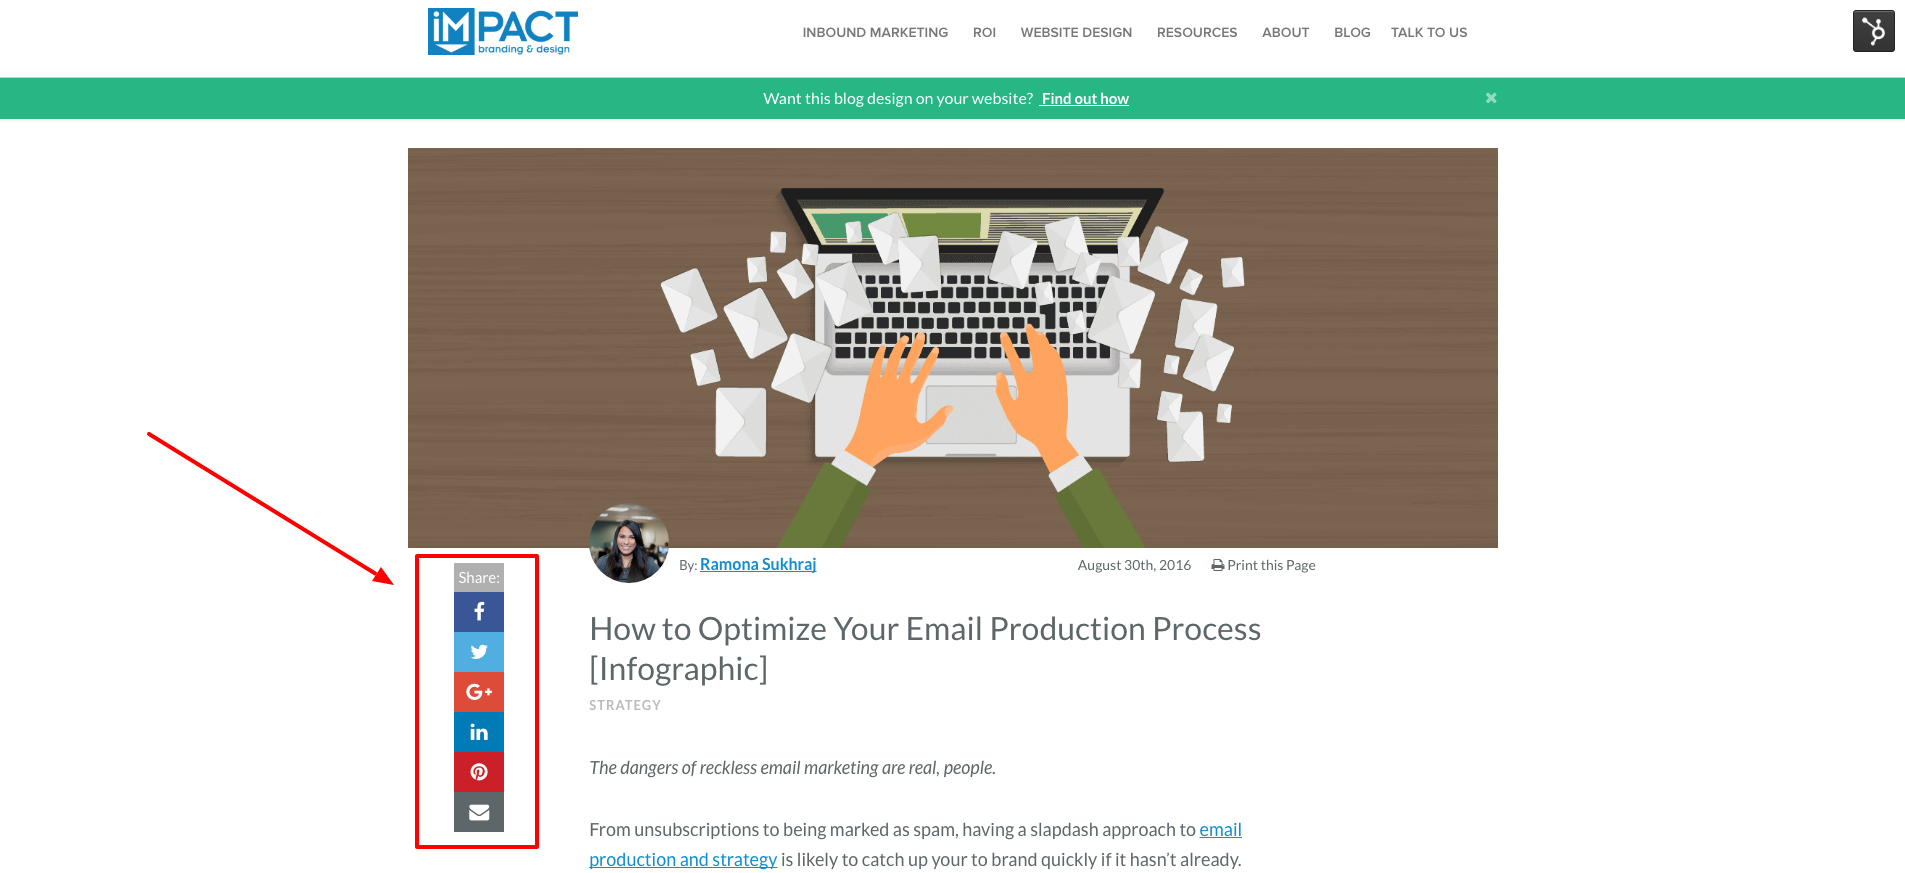 impact-high-converting-blog-design-2.png